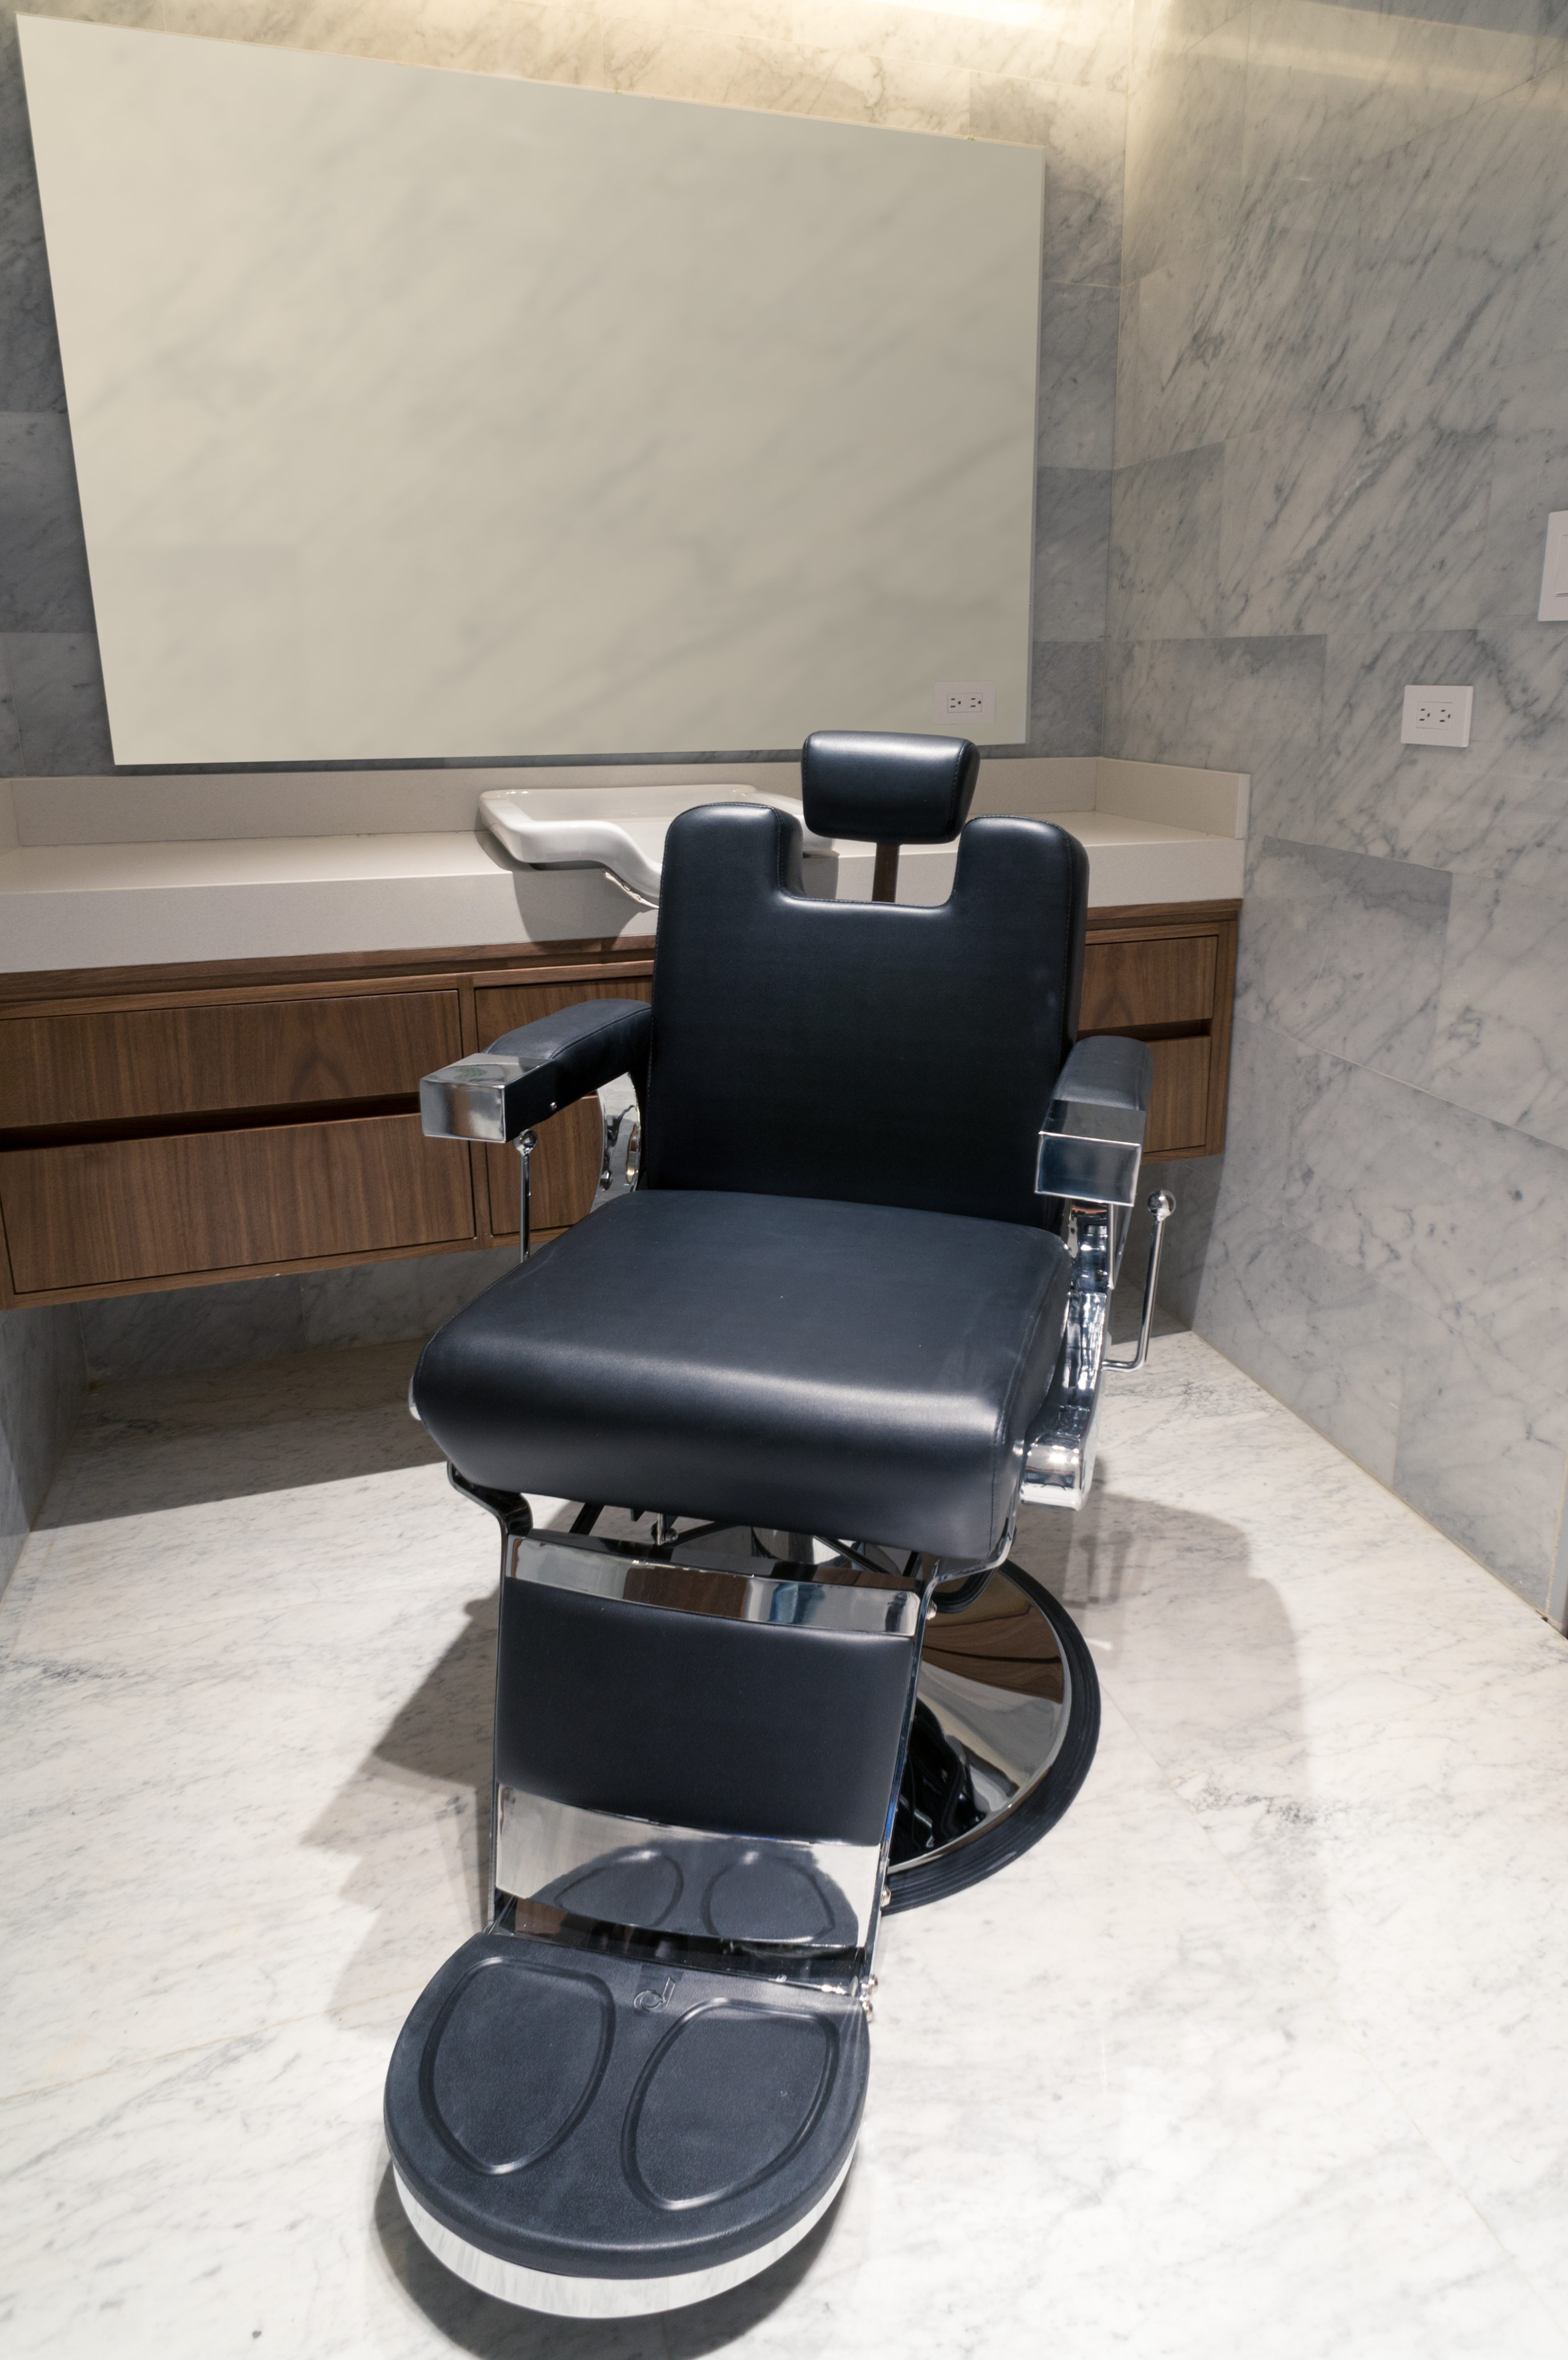 Barber chair for executive office